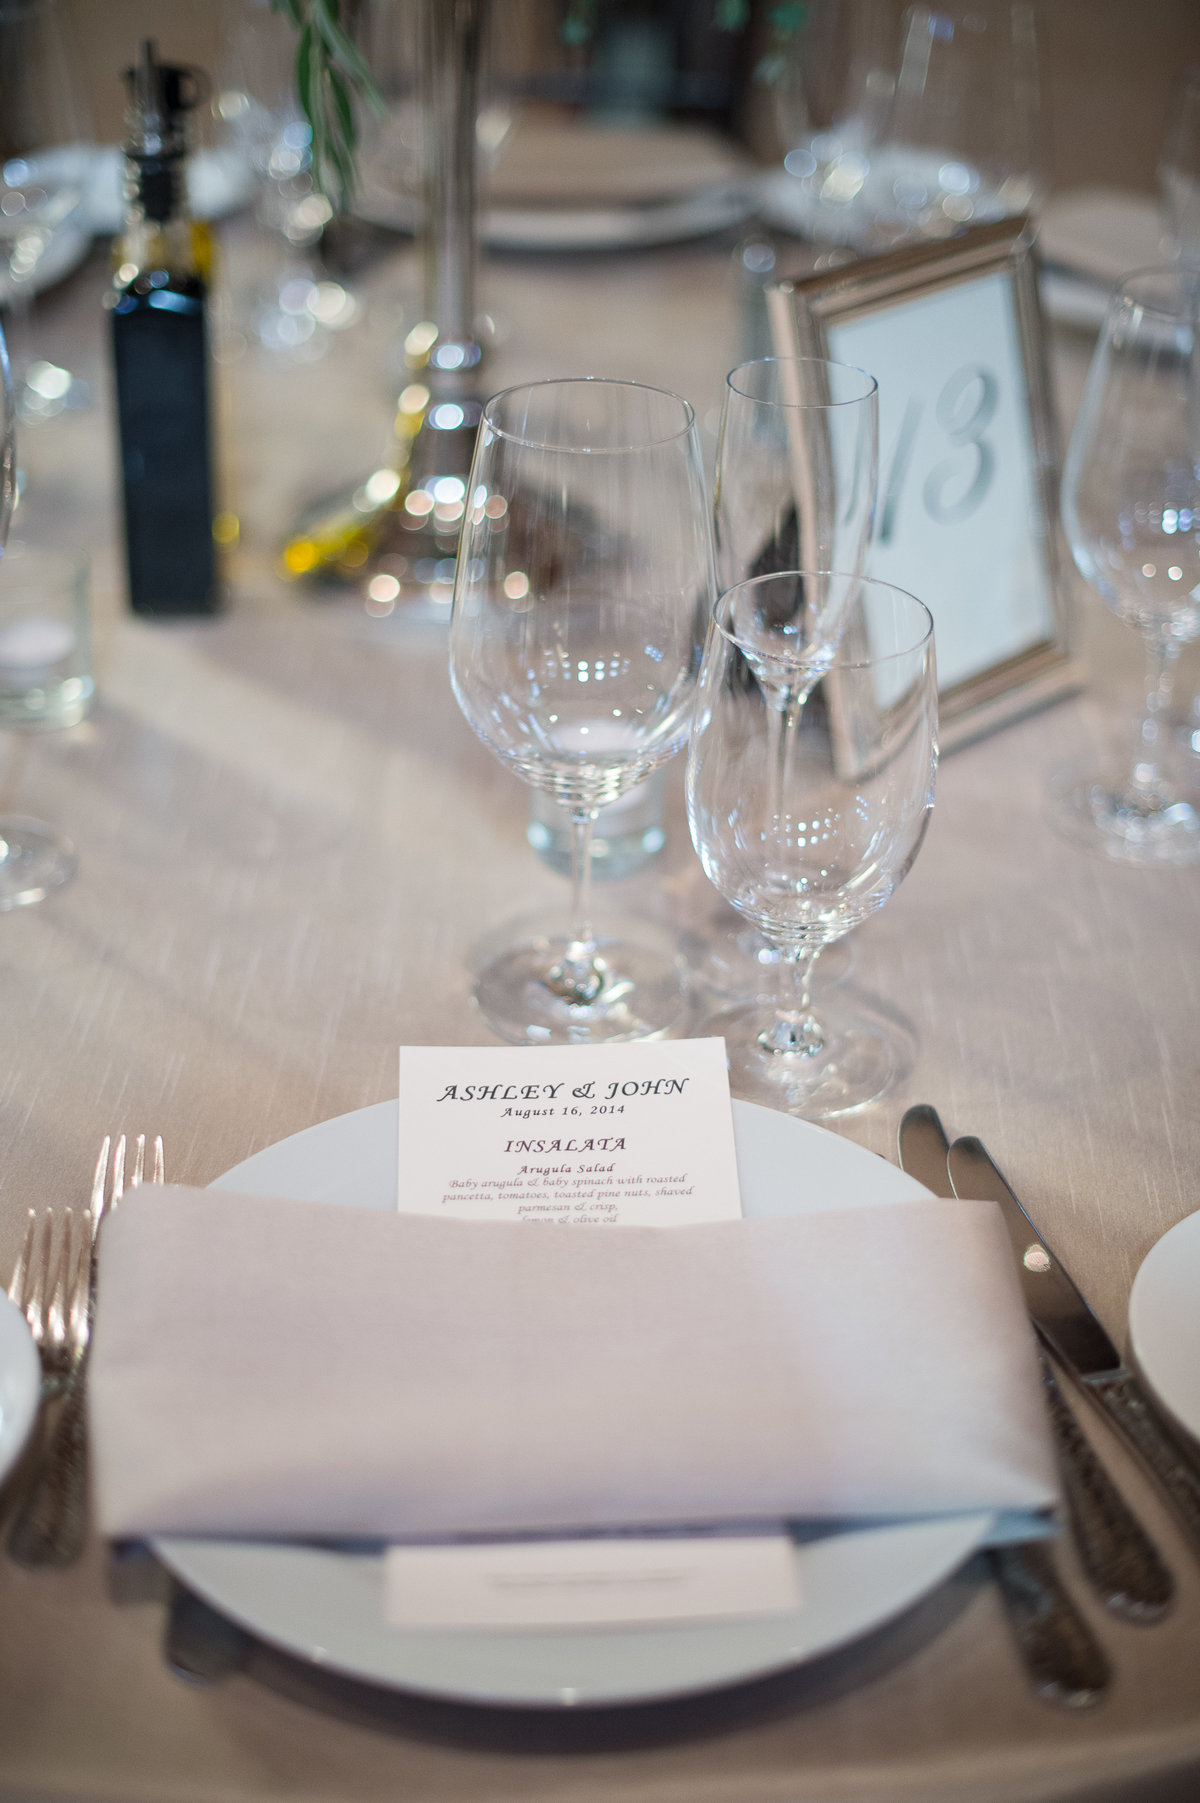 Jacuzzi Winery Wedding-4486